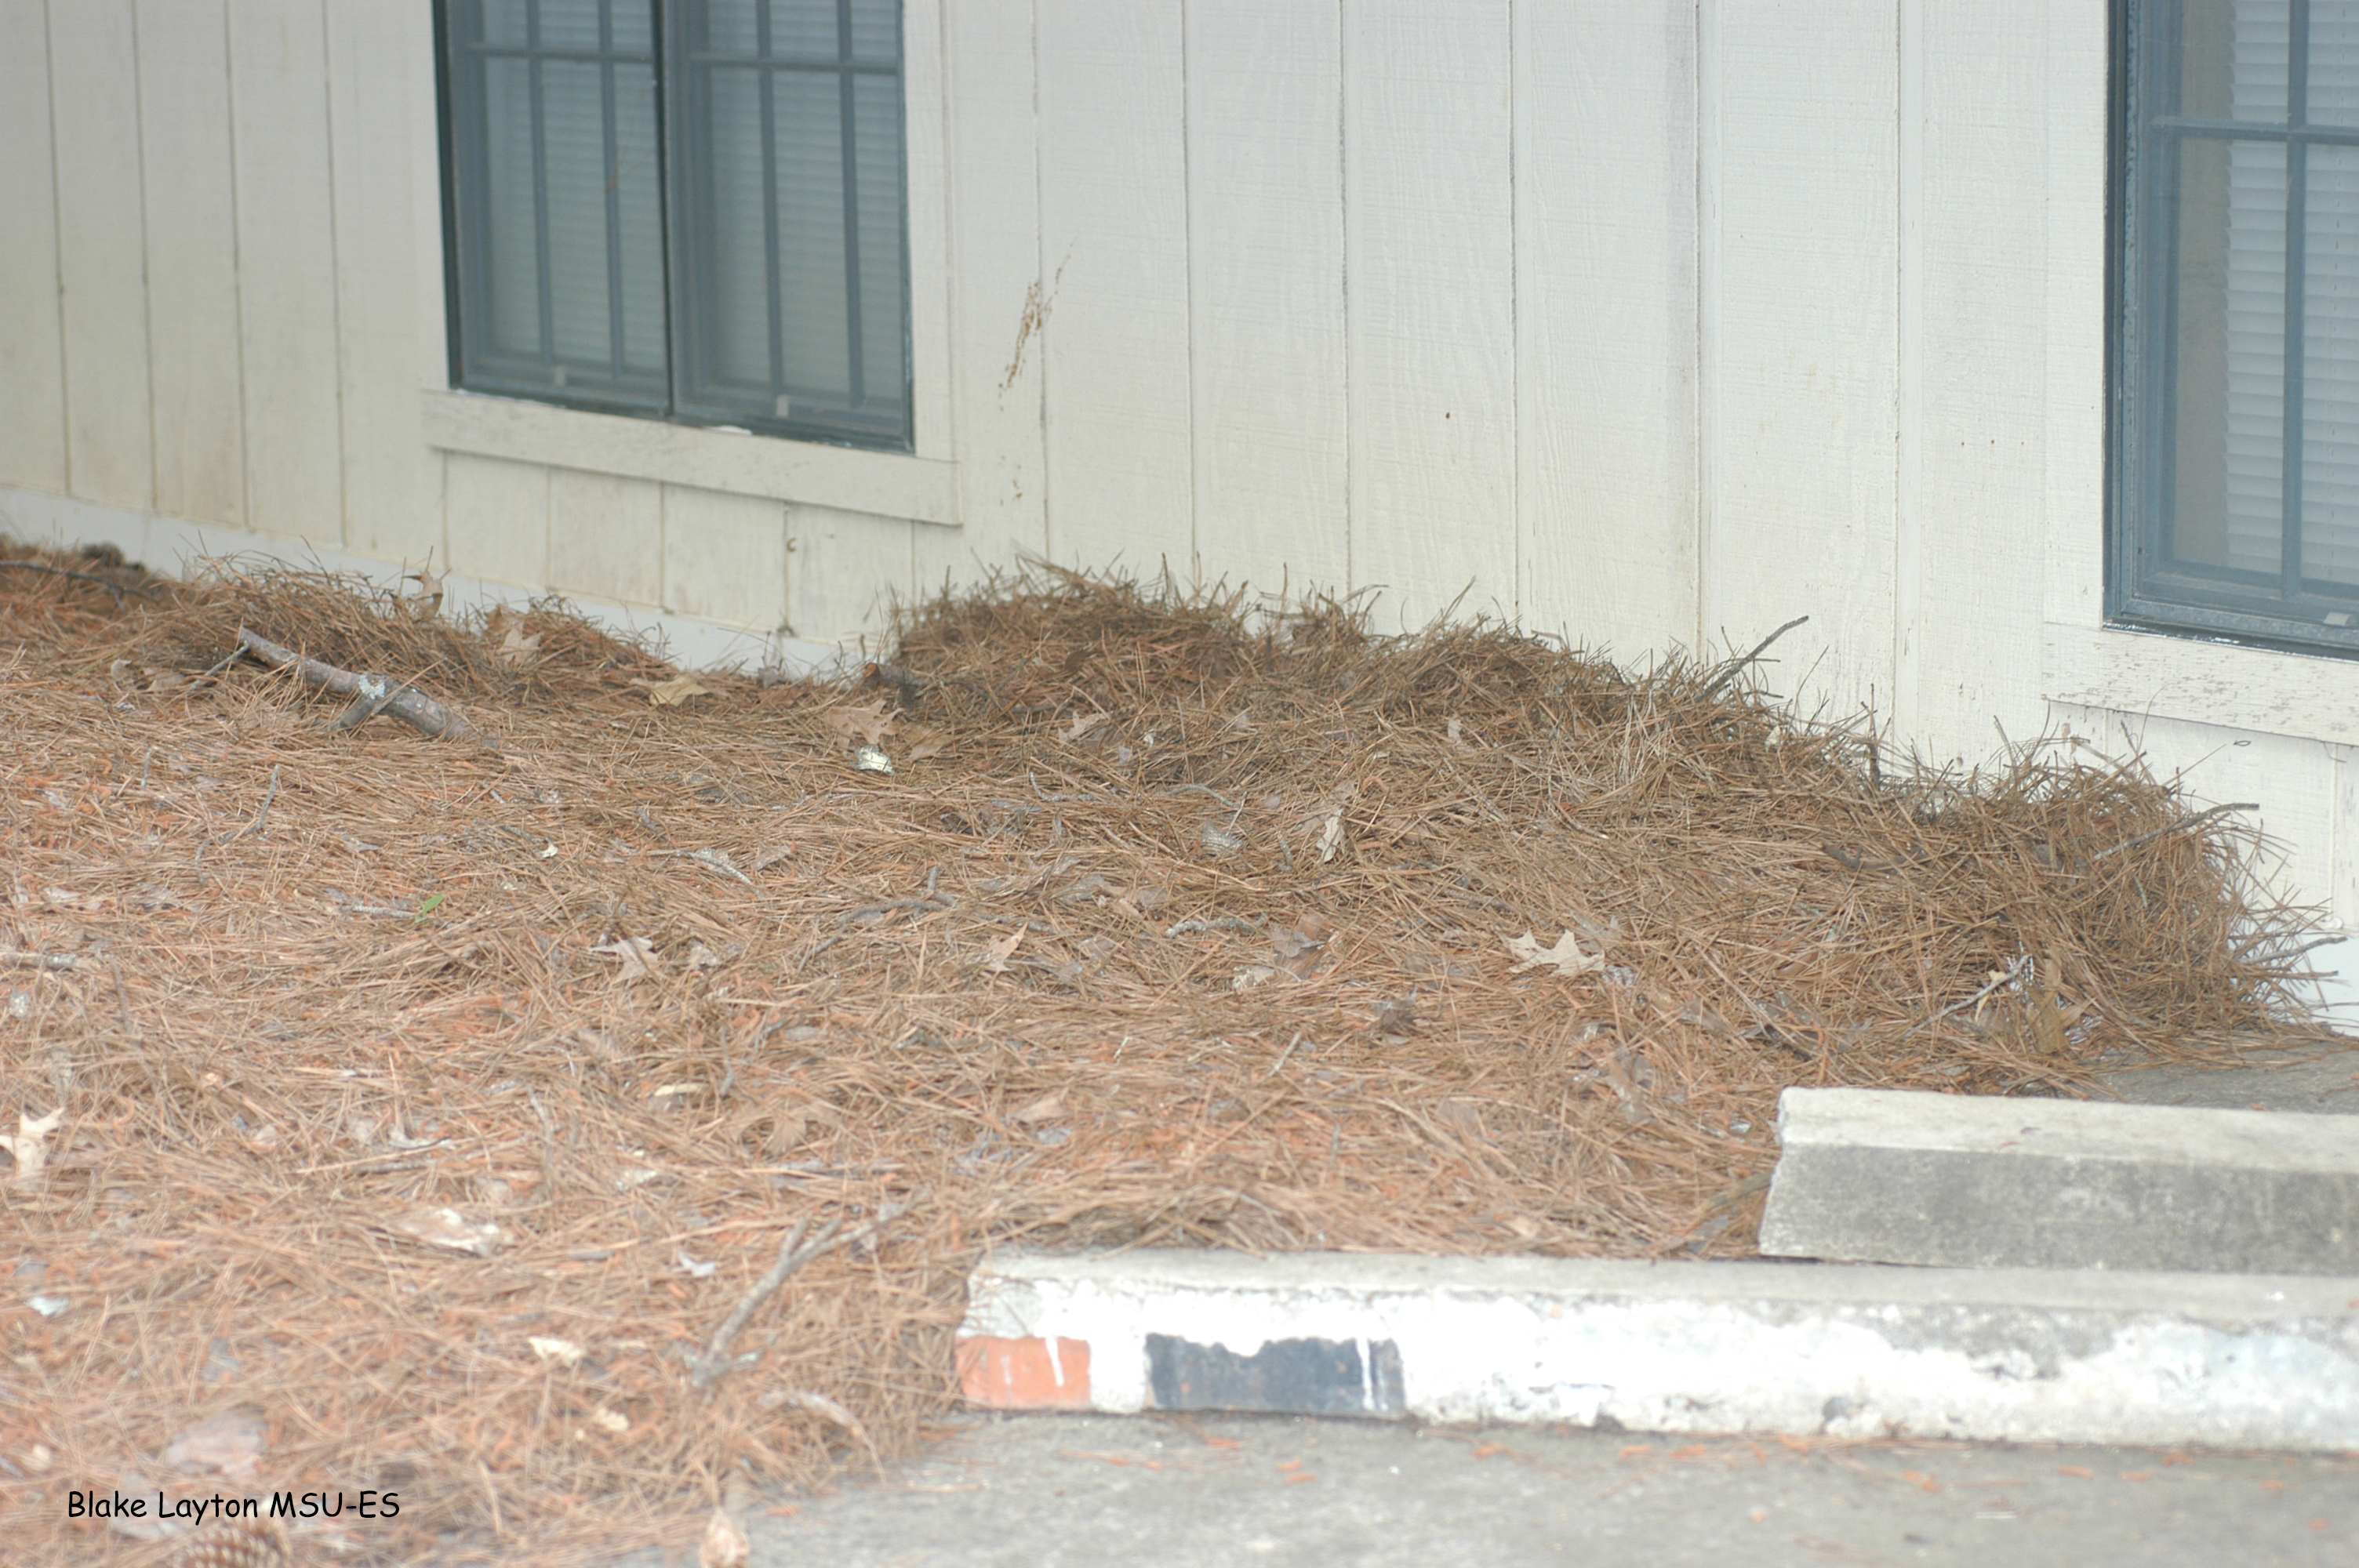 Organic mulch, such as this pine straw, piled against exterior walls greatly increases risks of termite attack, especially if the material is so thick that it reaches the lower level of siding.  Degrading mulch allows termites to tunnel directly into the building, bypassing any soil-applied insecticide treatments.